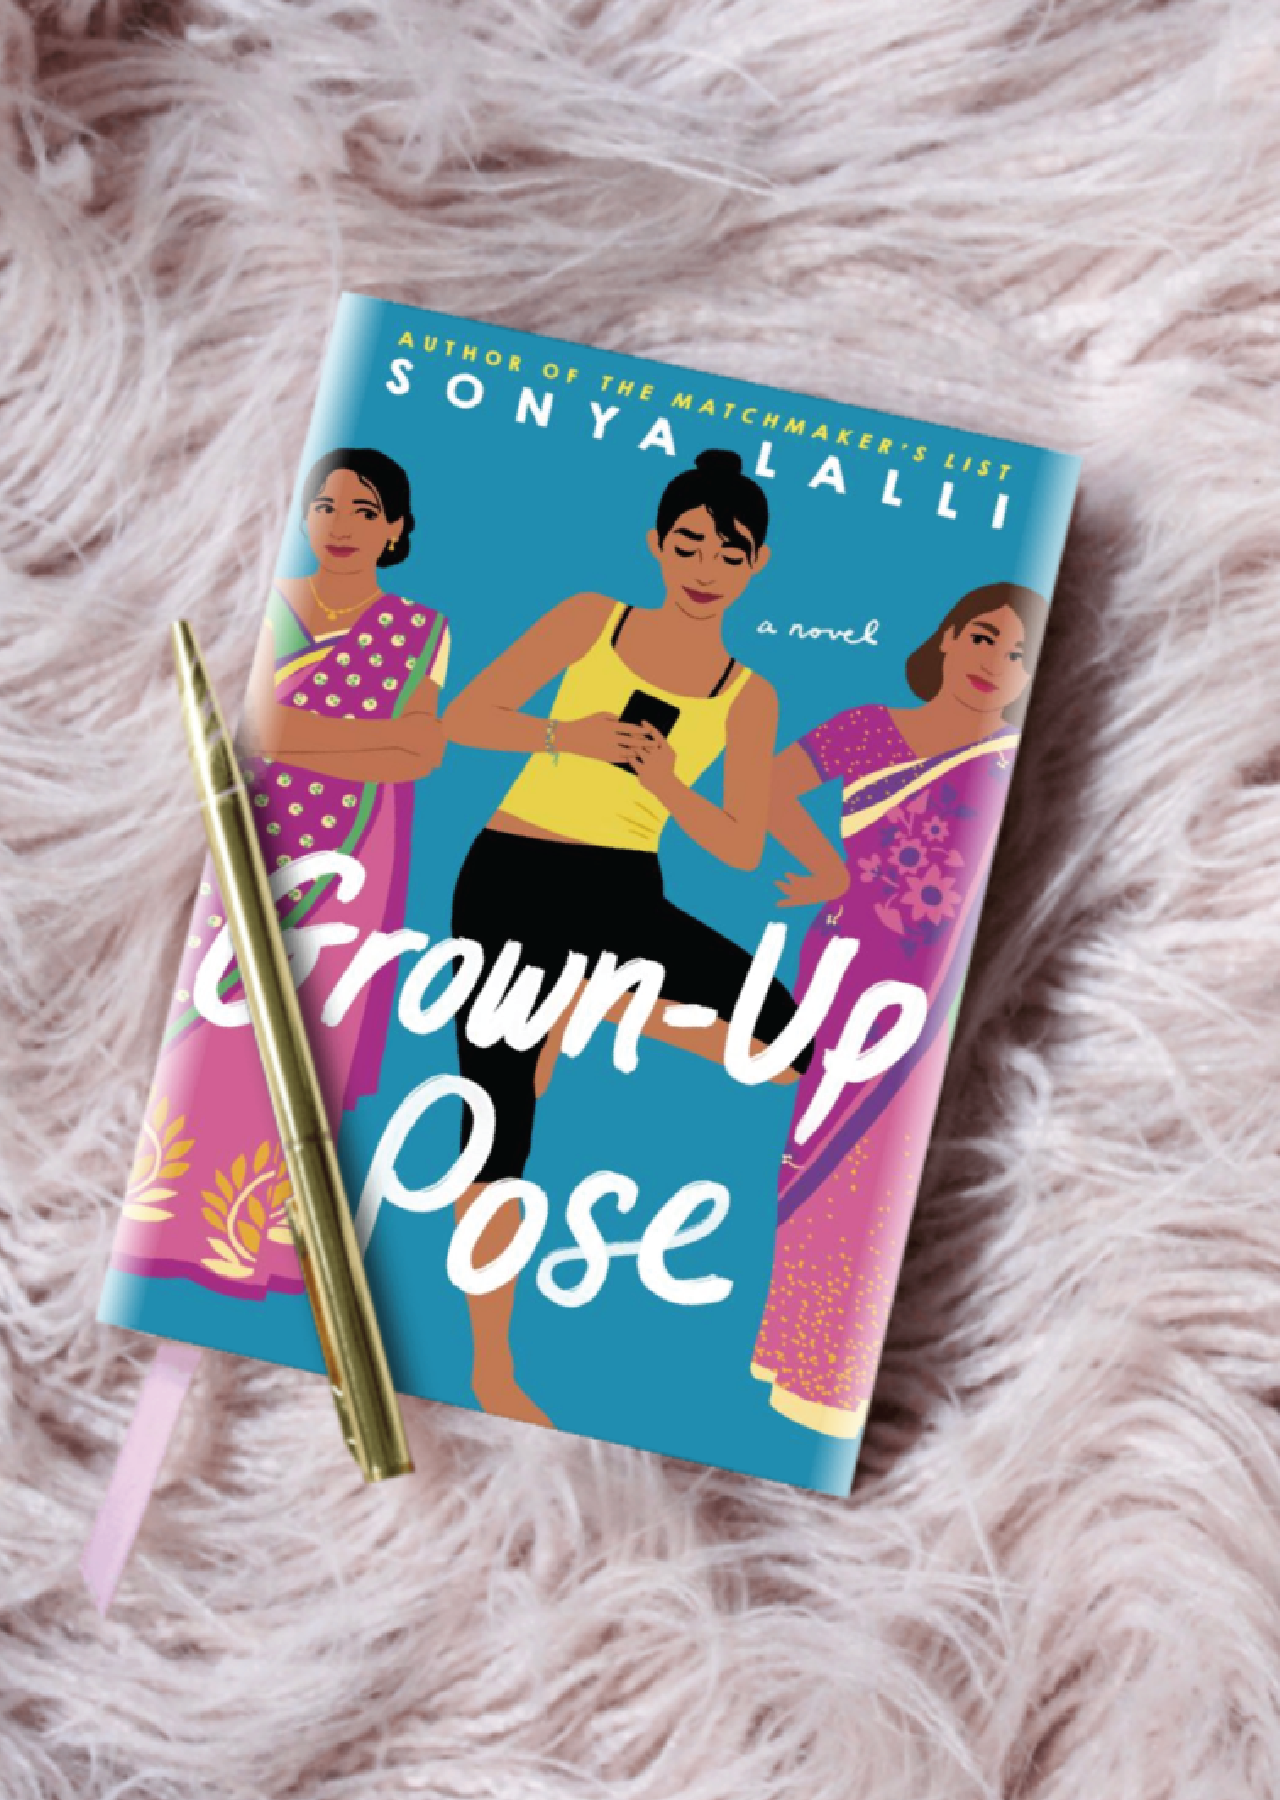 Grown-Up Pose by Sonya Lalli